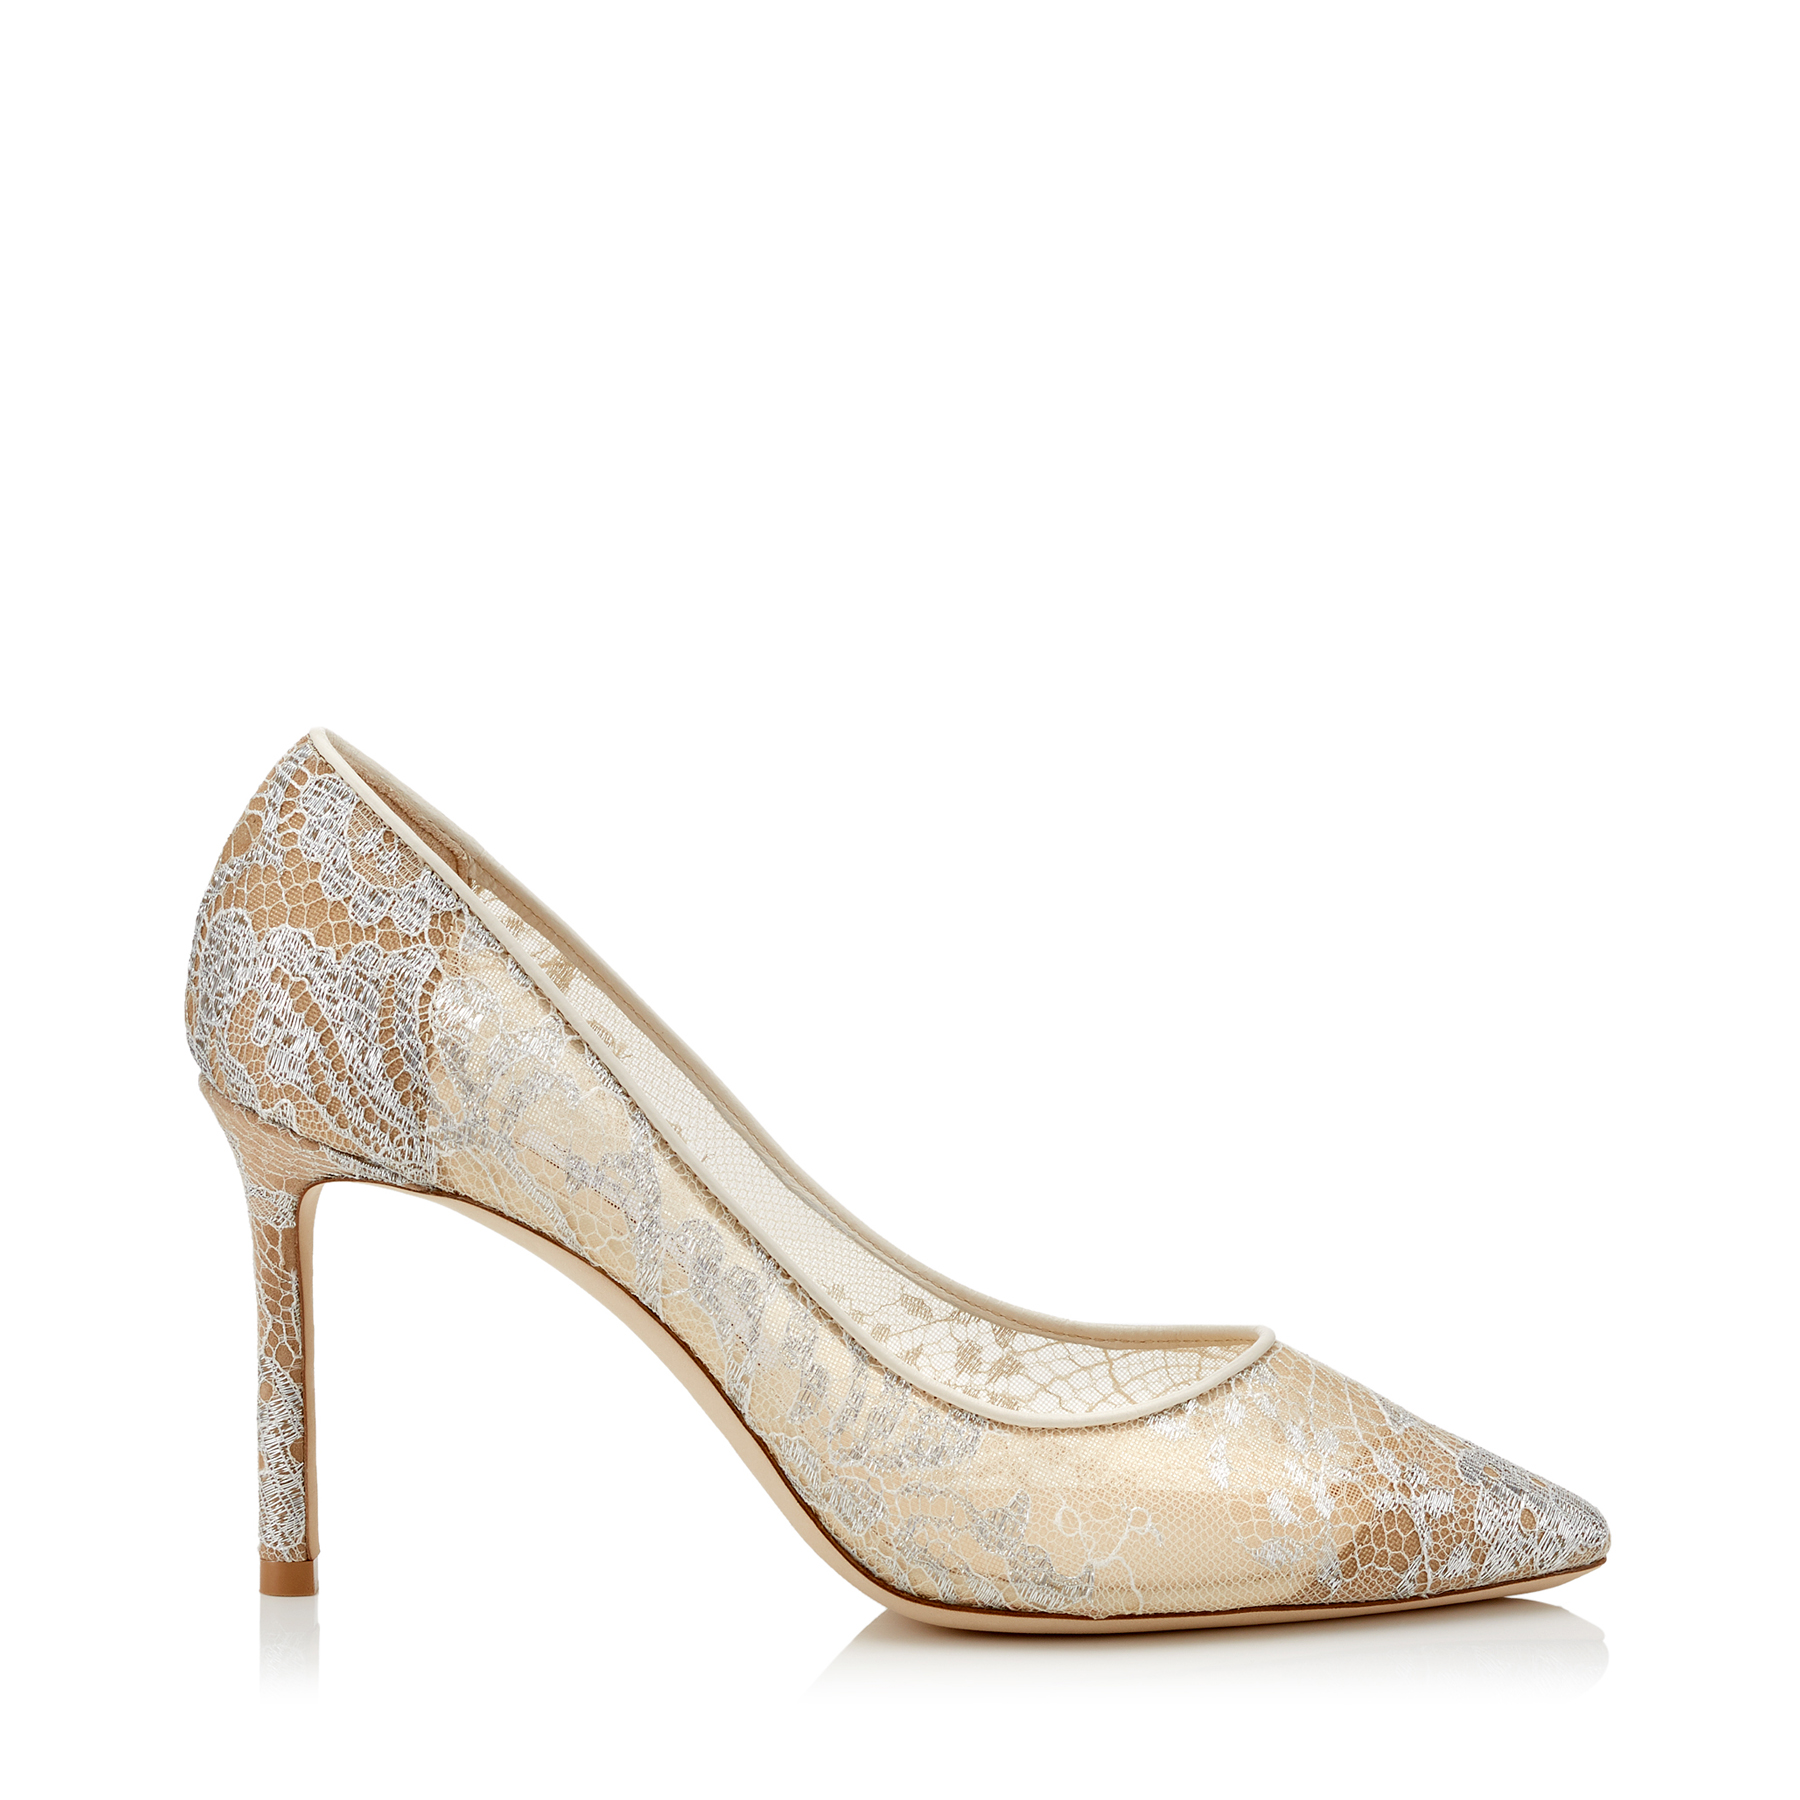 ROMY 85 White Lace Pointy Toe Pumps by Jimmy Choo